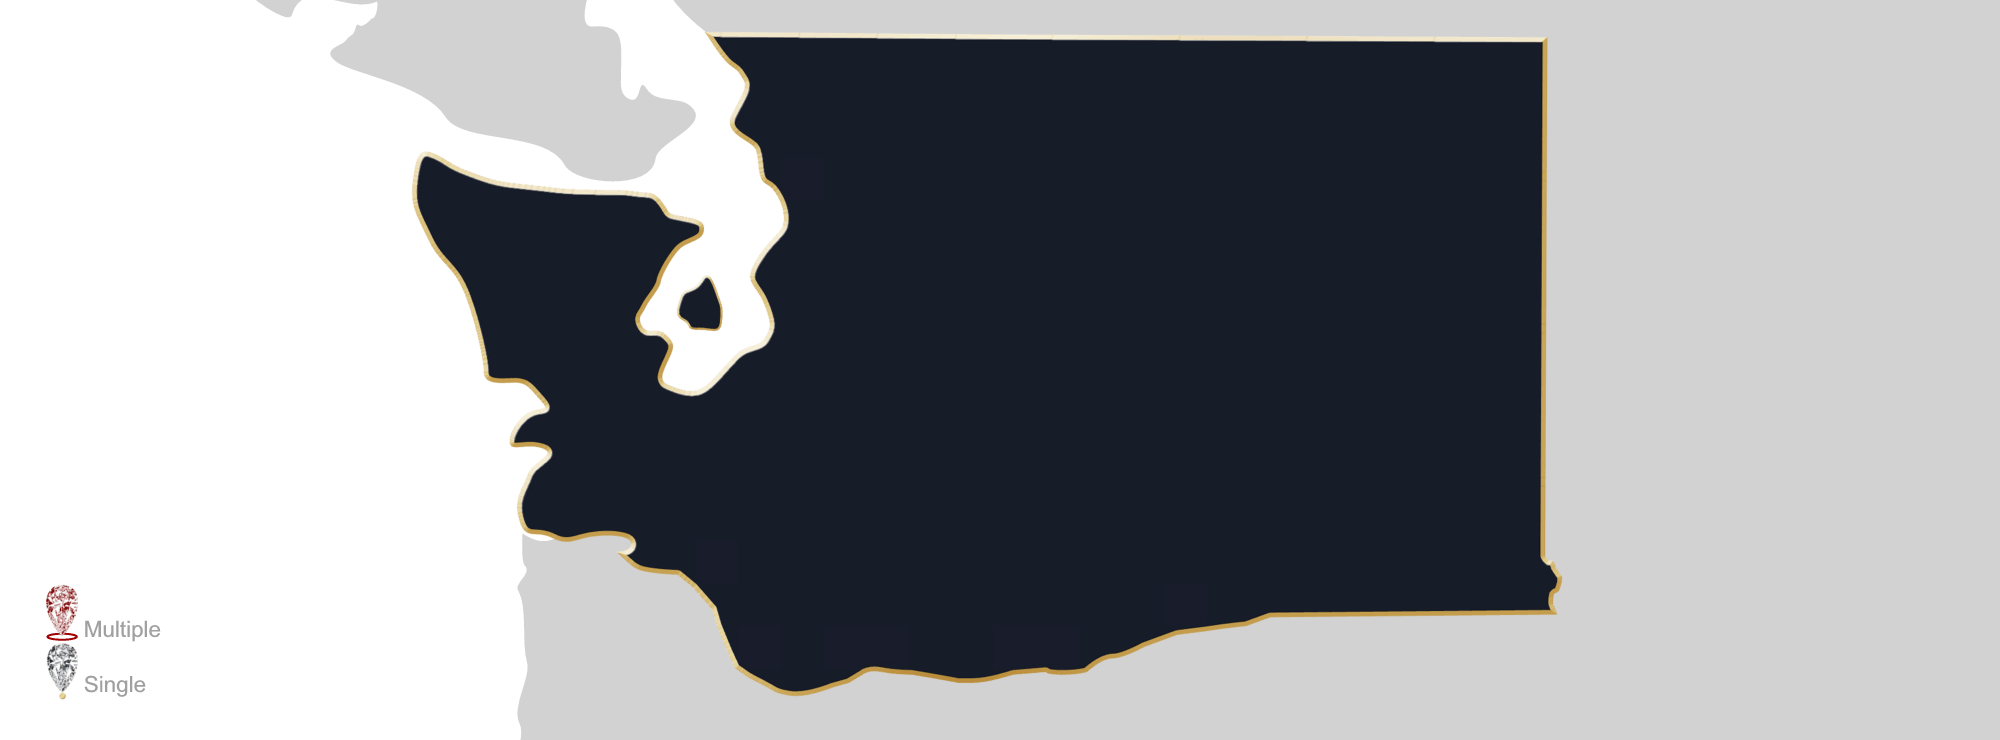 Washington state outline png. Jewelry appraisers gemologists gem